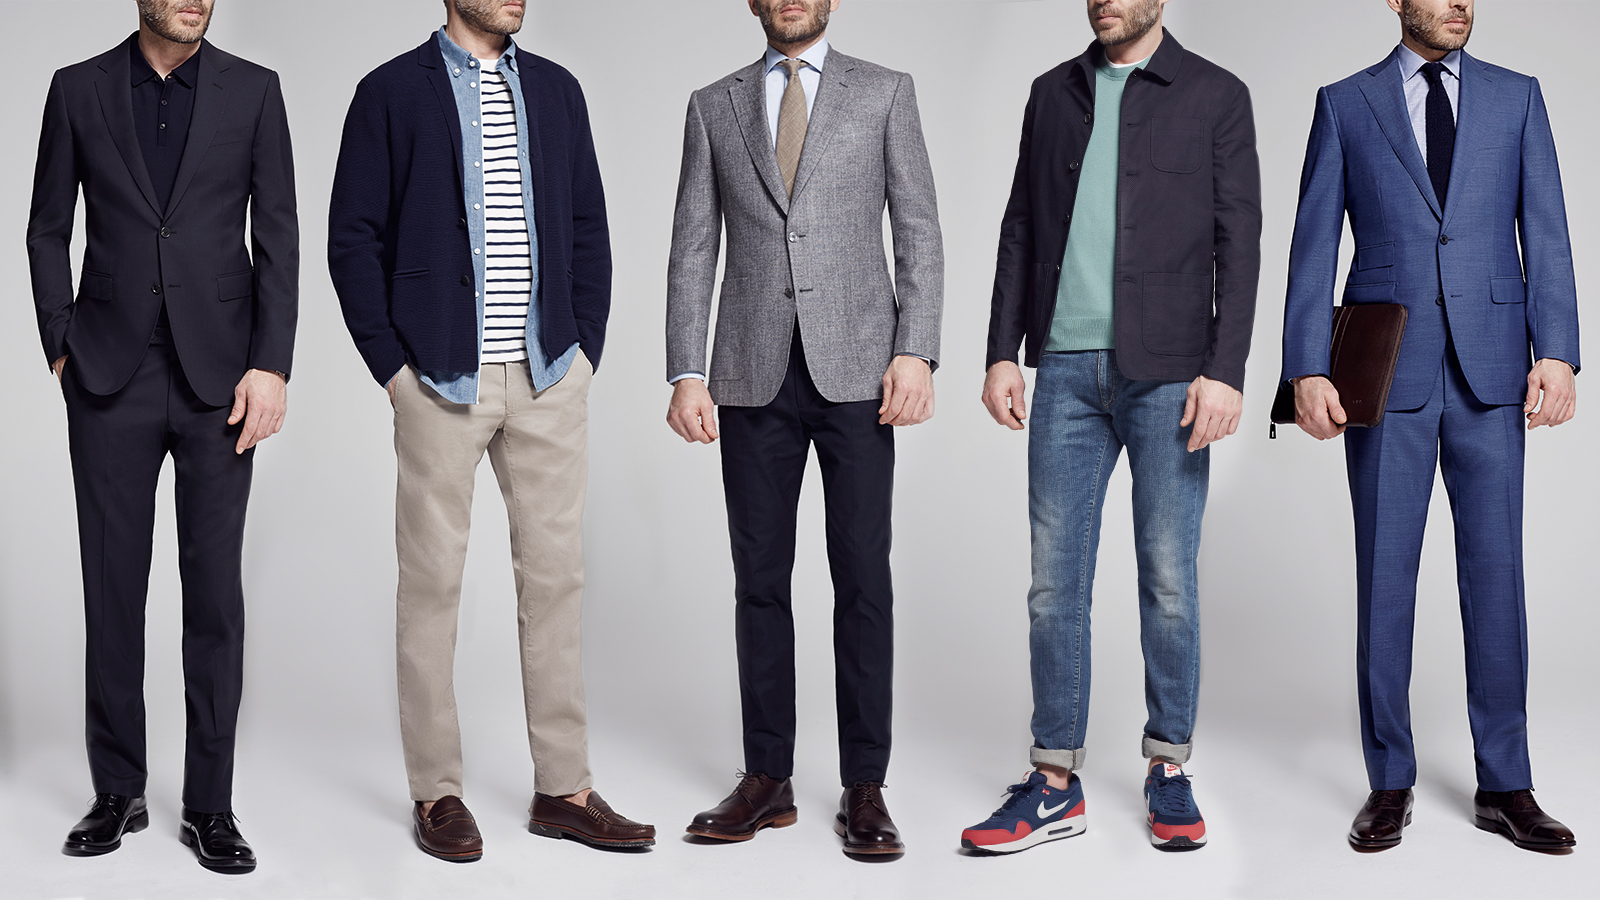 Get Quality Men's Wear With Wholesale Men's Clothing